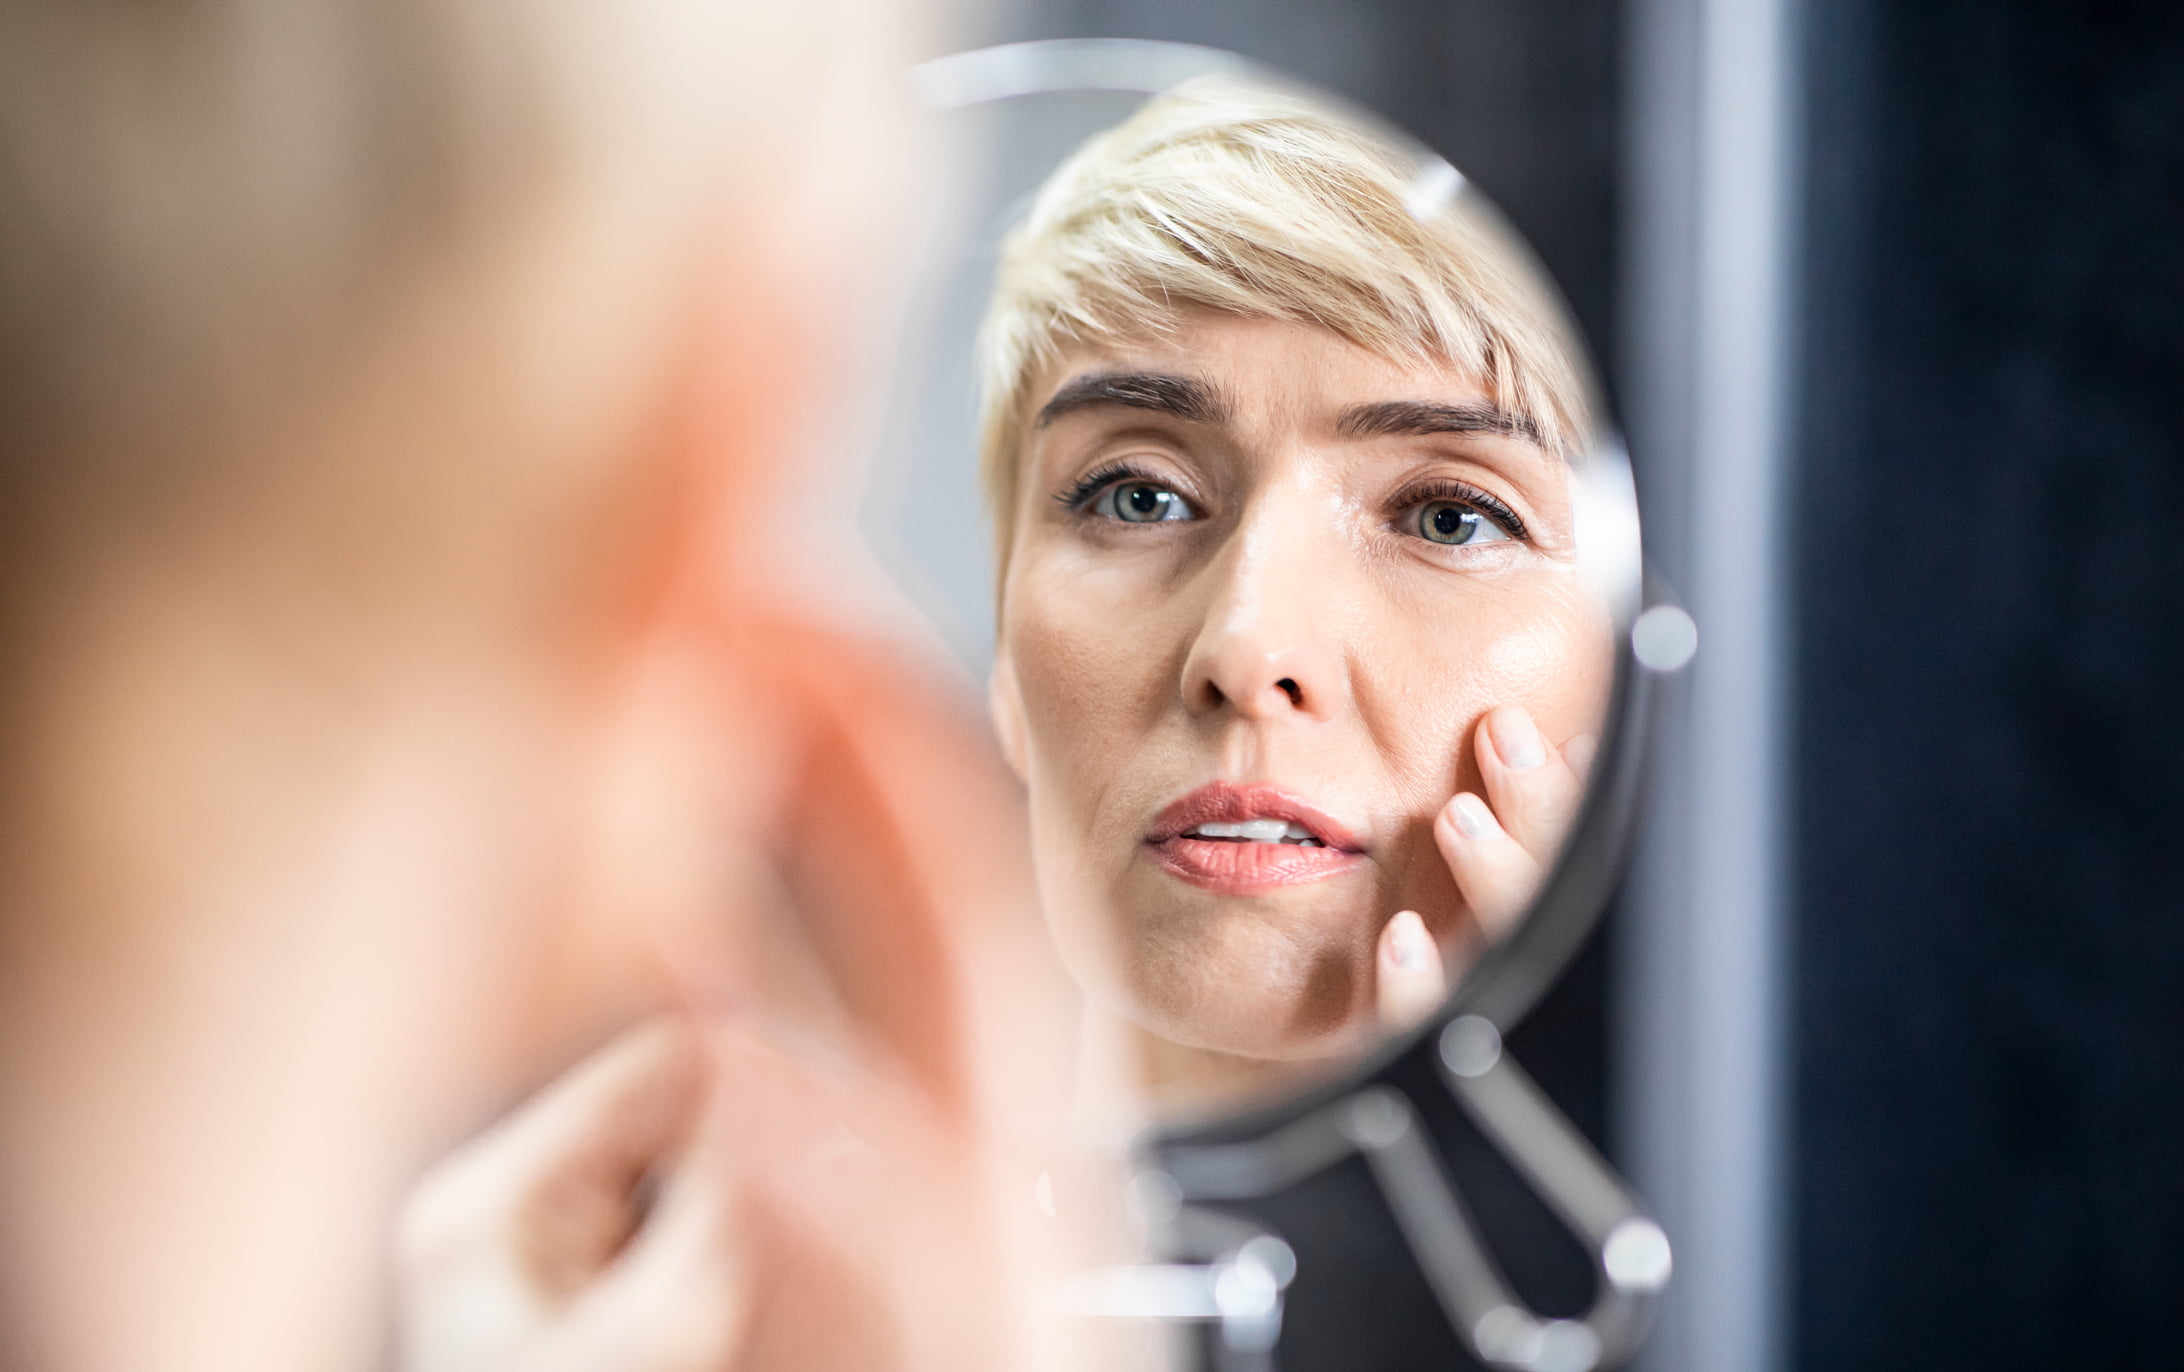 Woman looking in the mirror at wrinkles on her face.